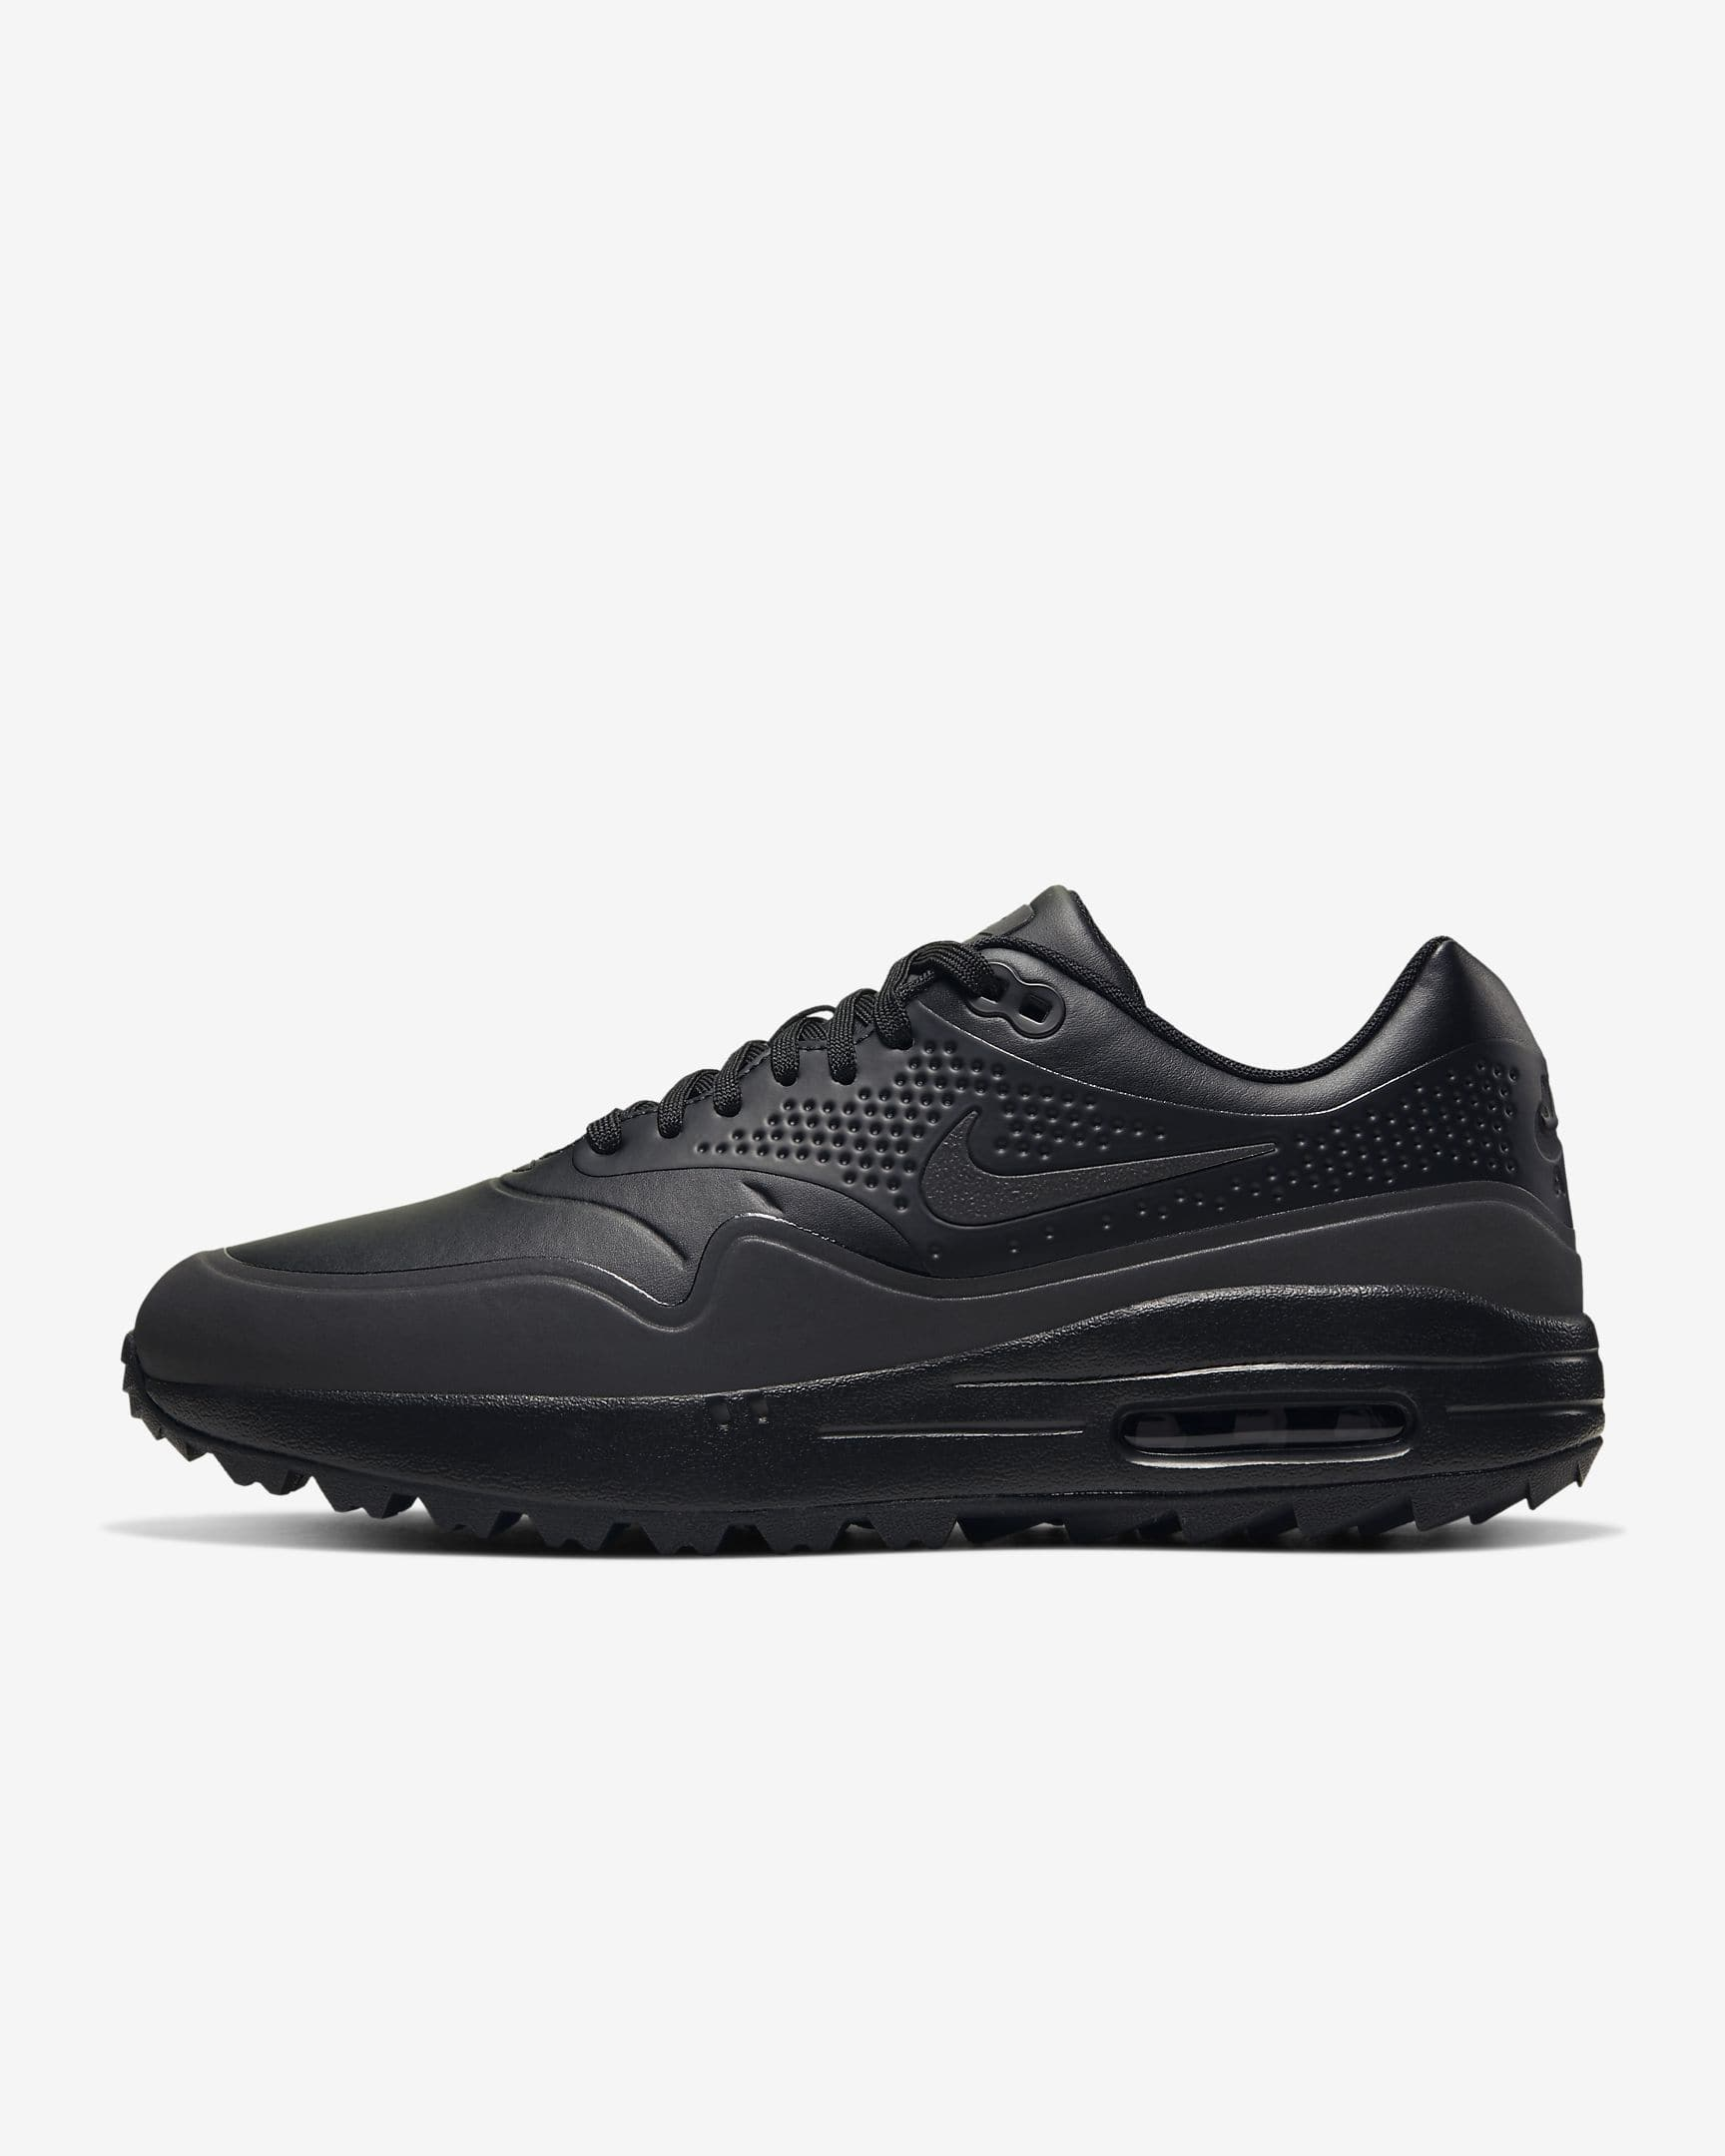 Nike Air Max 1 G Golf Shoes - Mens Large Sizes